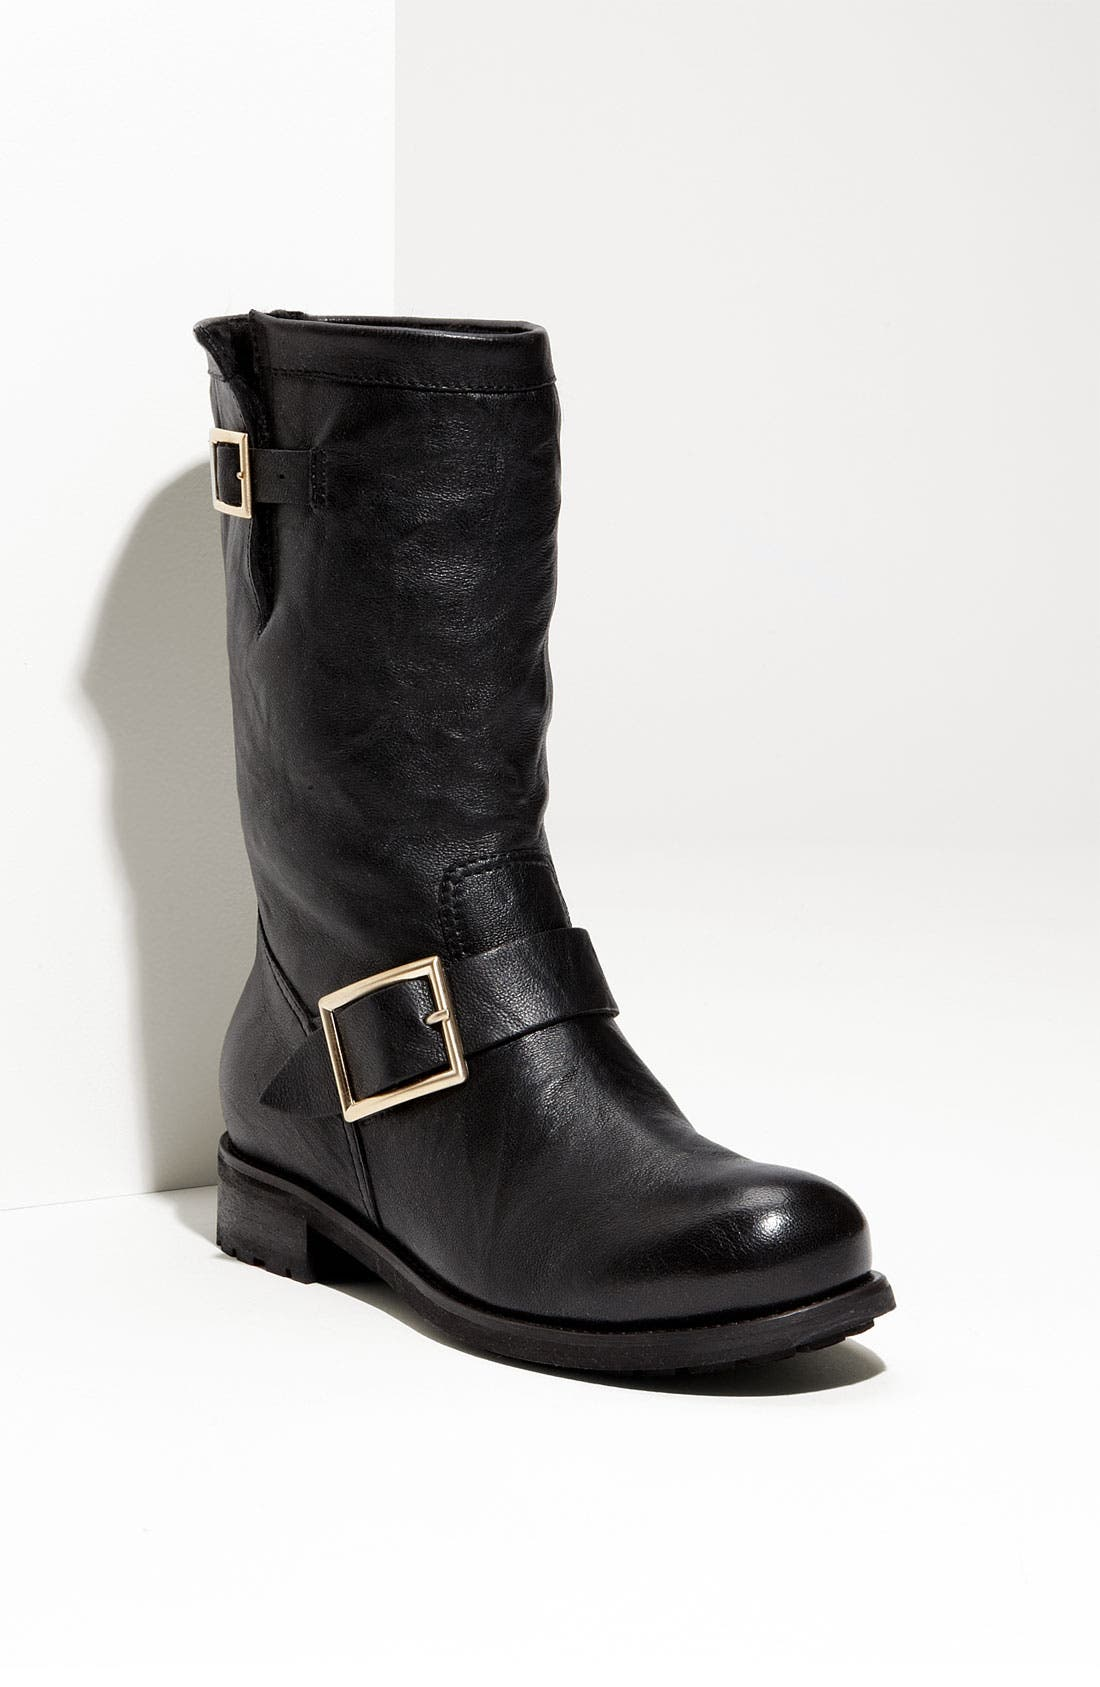 Main Image - Jimmy Choo Rabbit Fur & Leather Biker Boot